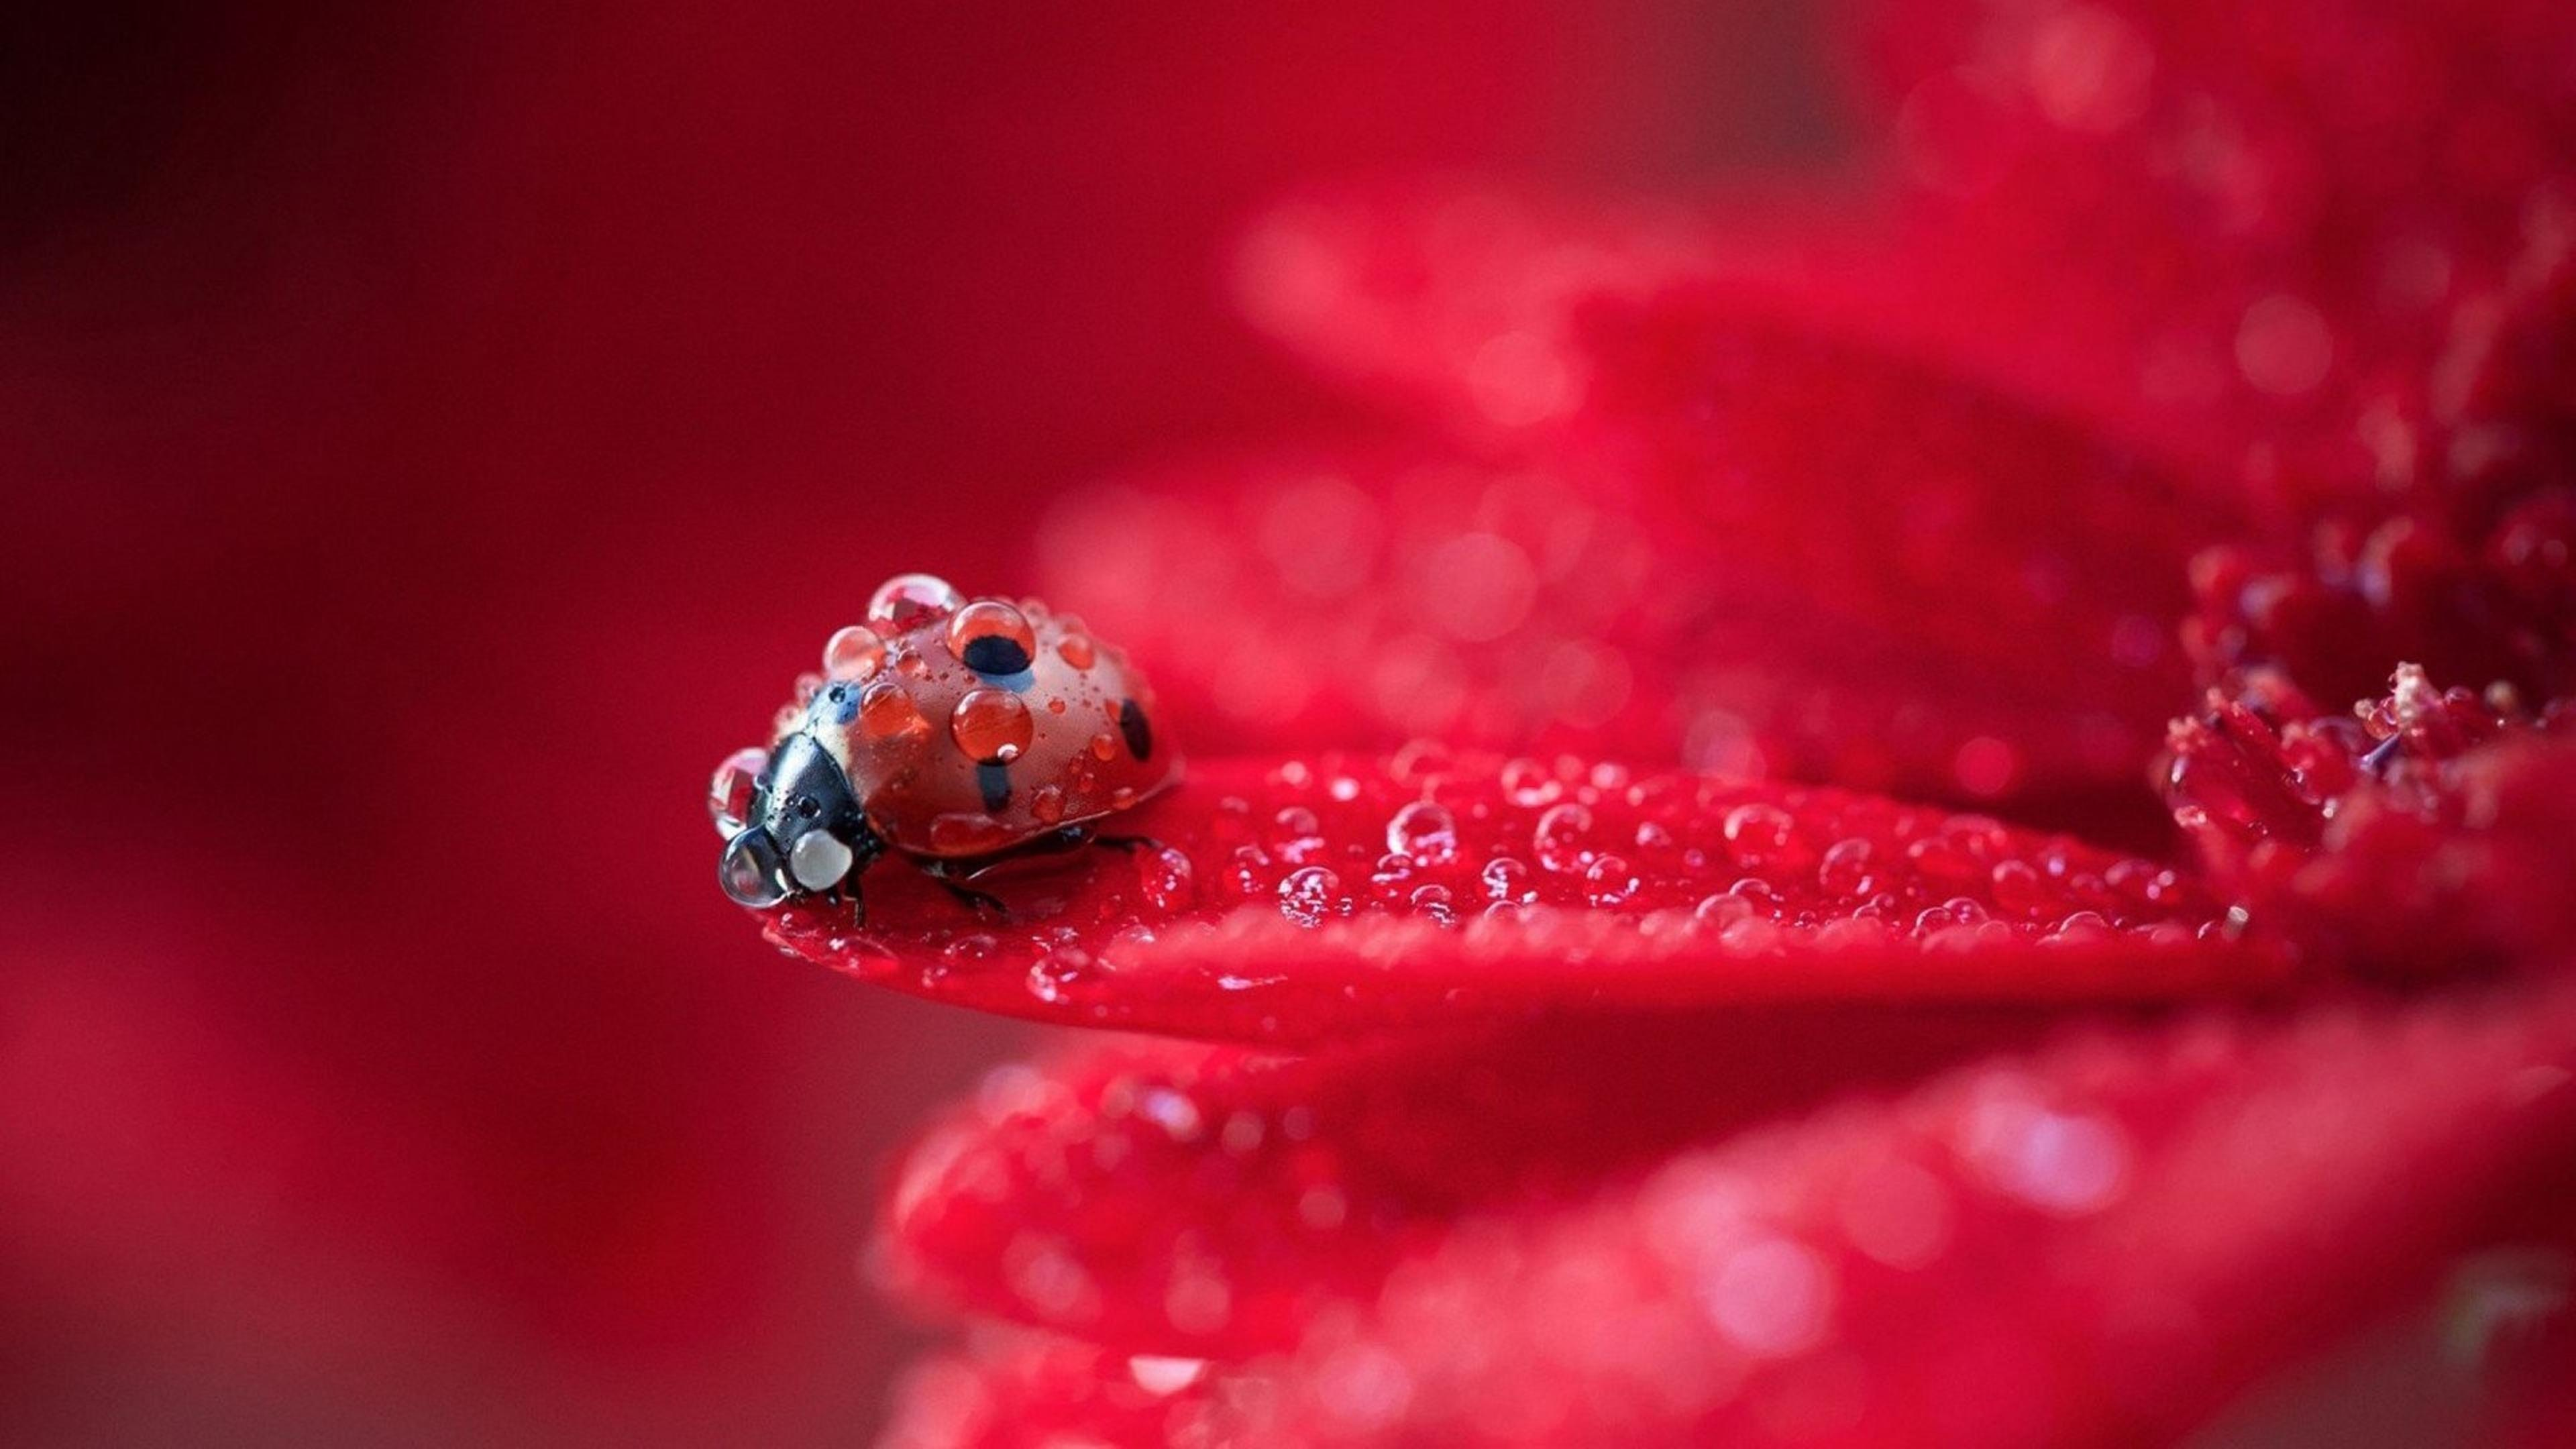 macro water drops on a little ladybug - hd wallpaper